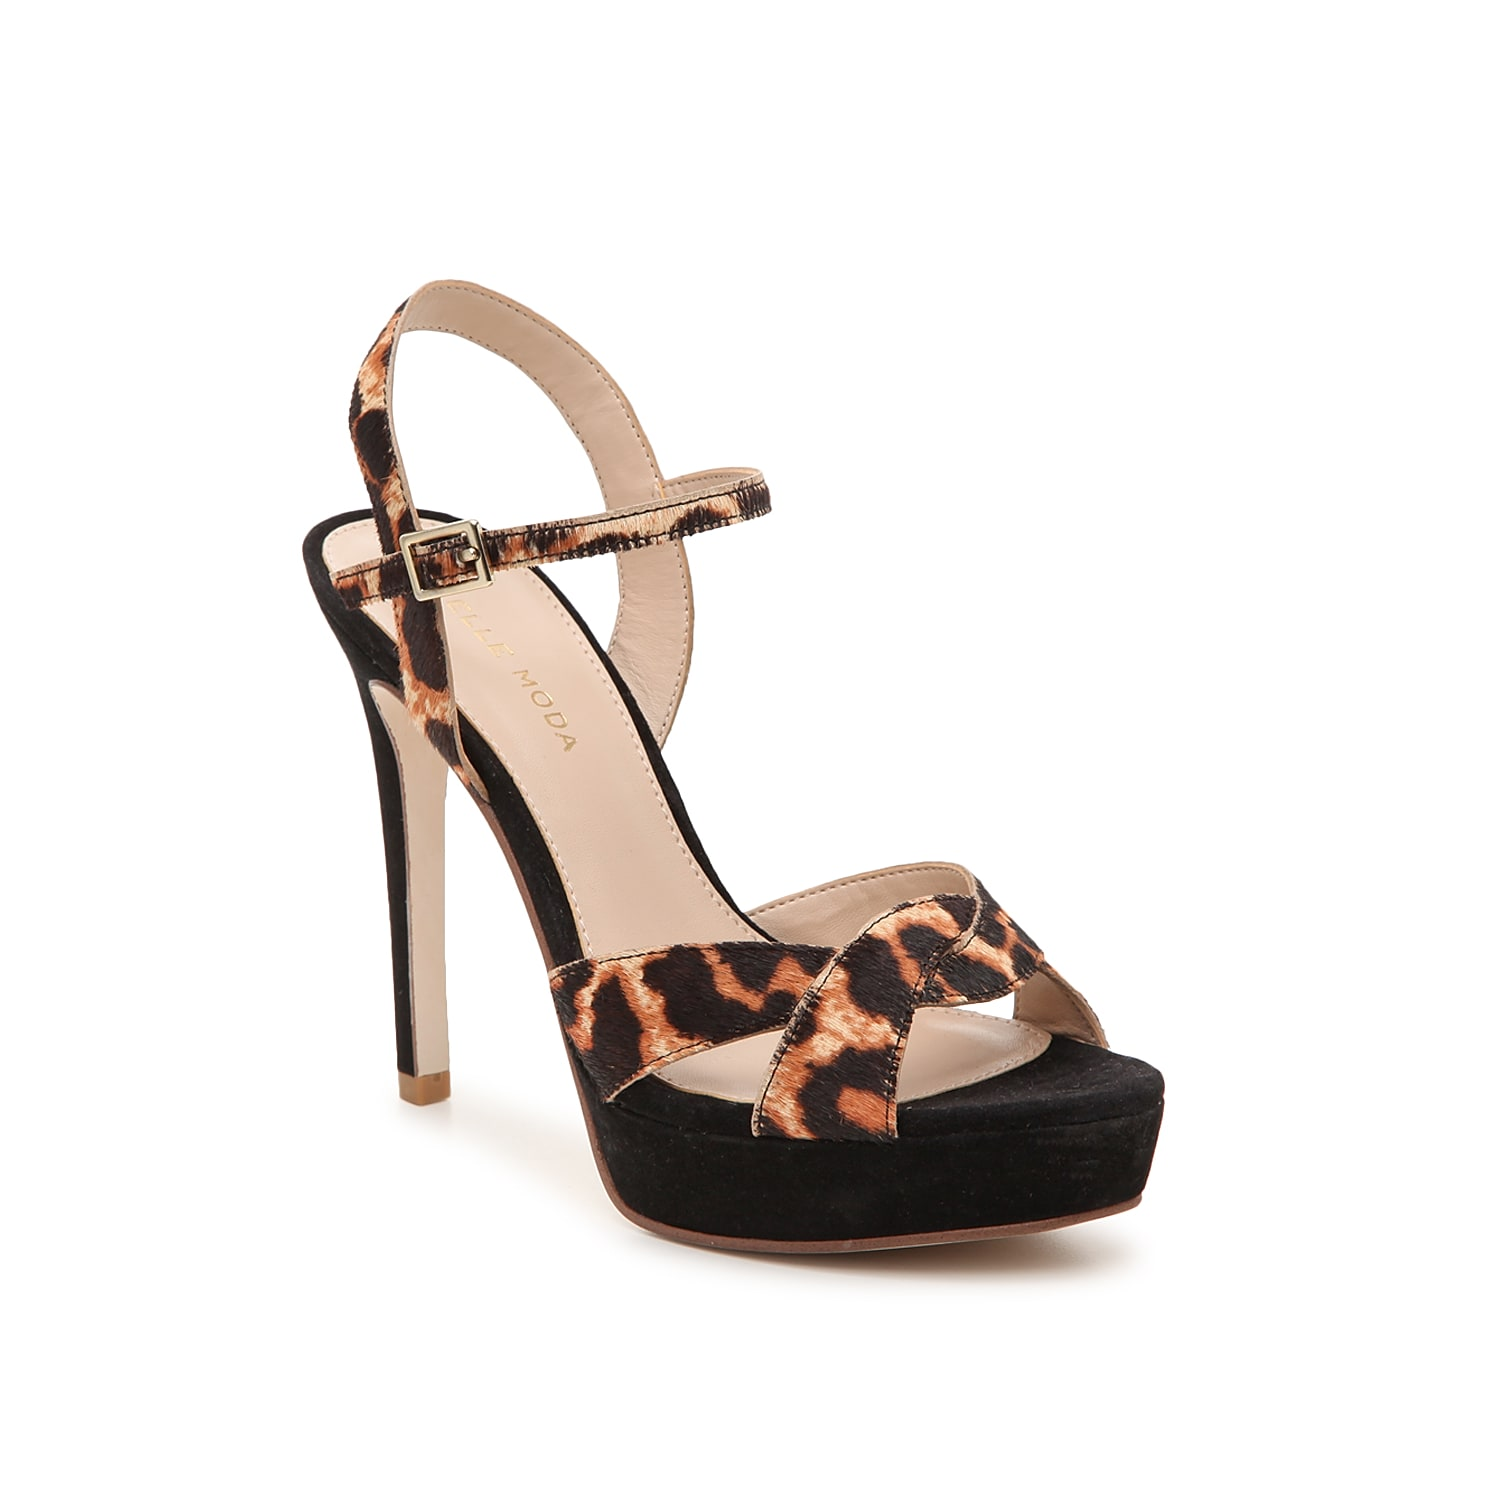 Reach new heights in the Danielle platform sandal from Pelle Moda. This silhouette is fashioned with a printed calf hair upper and a braided toe strap for extra allure!